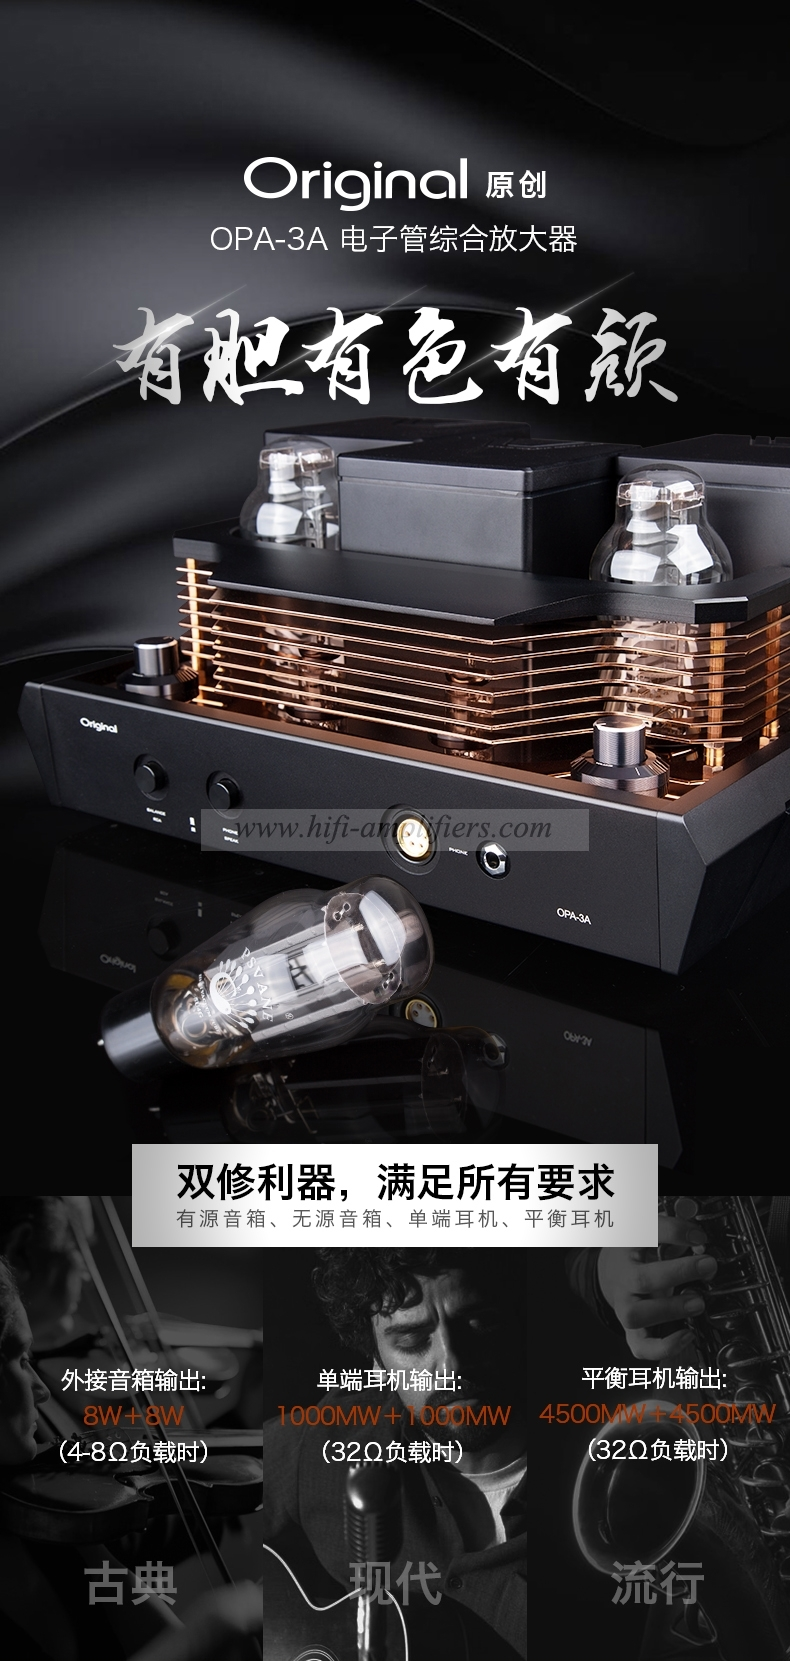 Original OPA-3A 300B Vacuum tube Amplifier HiFi Headphone Balance output Amp